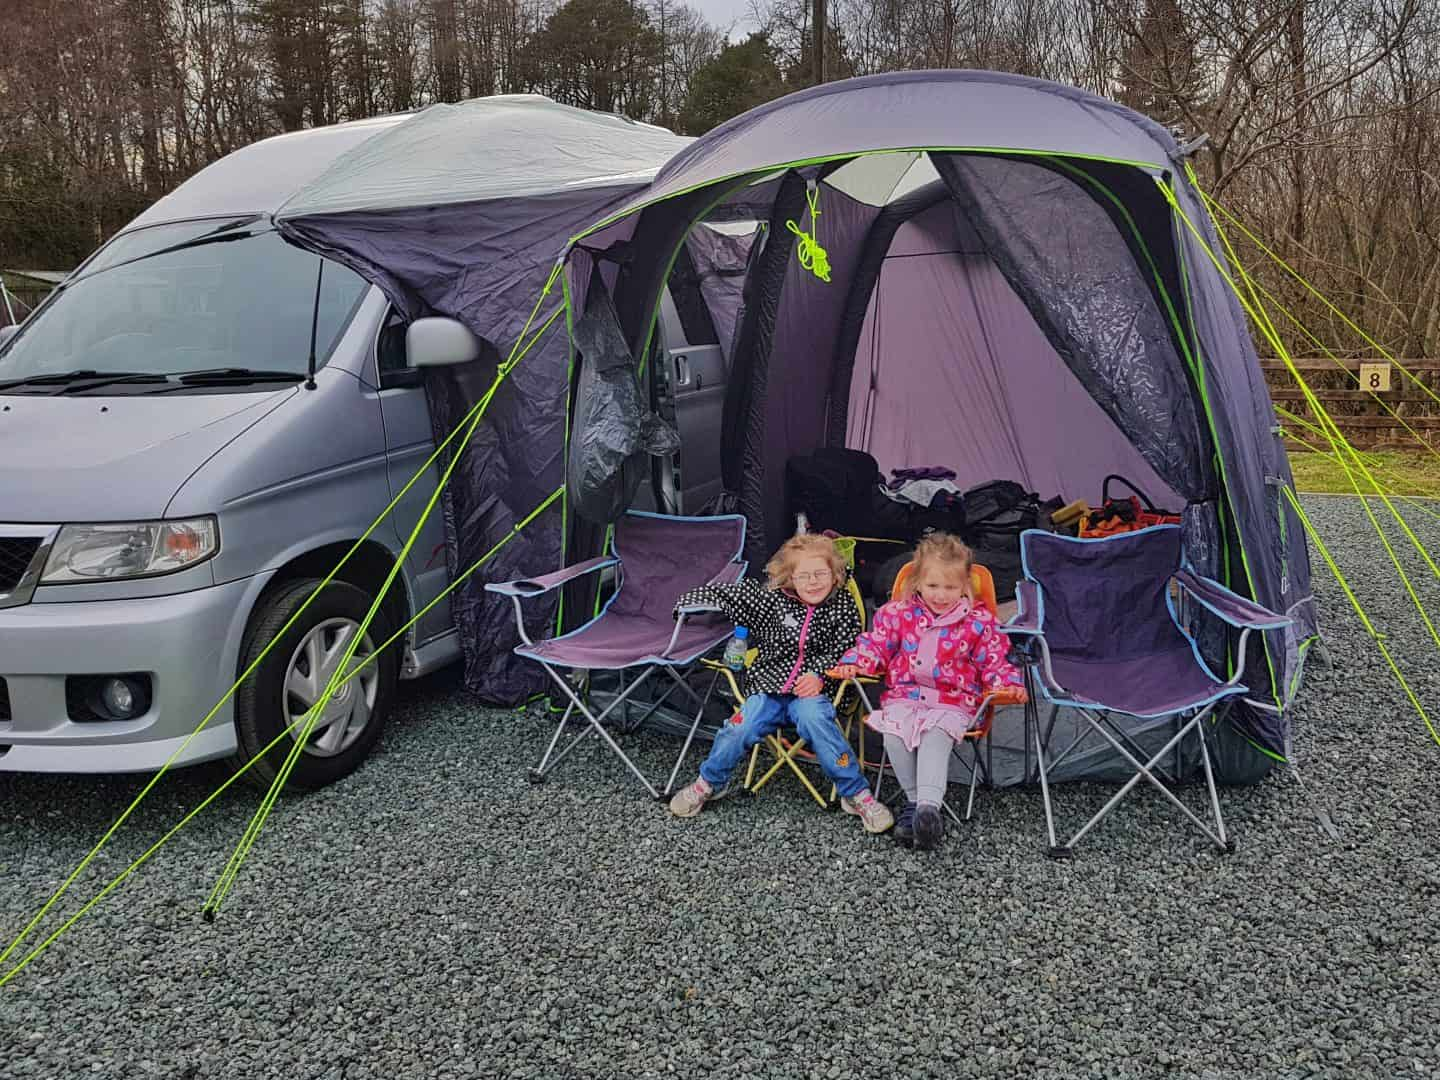 10 tips for packing a campervan for family travel